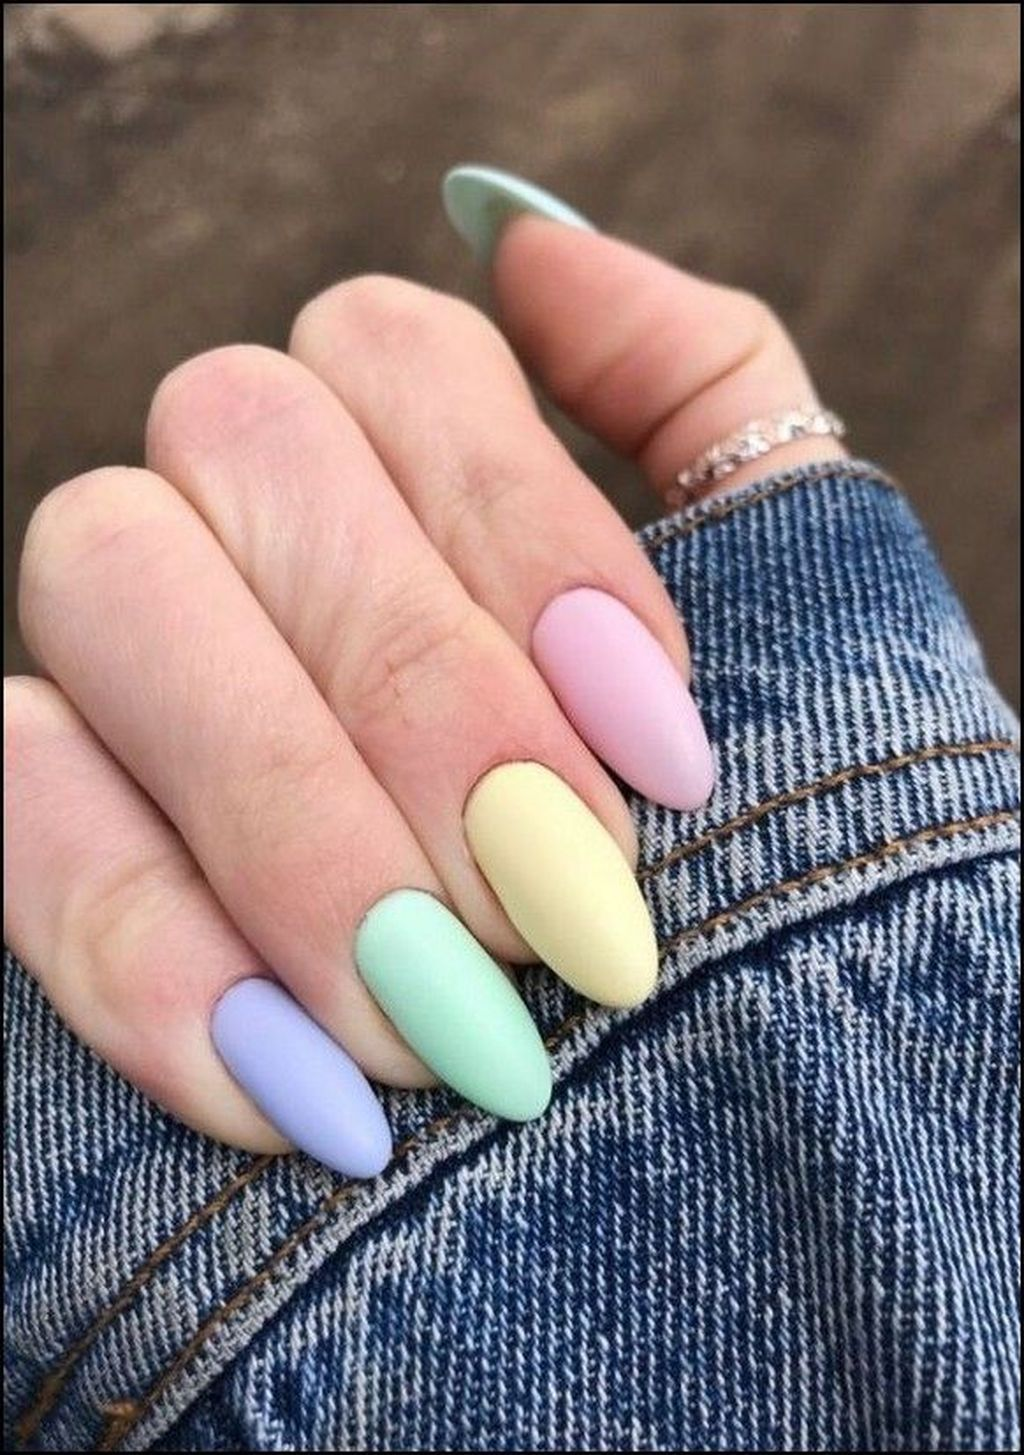 30 Casual Acrylic Nail Art Designs Ideas To Fascinate Your Admirers In 2020 With Images Multicolored Nails Best Acrylic Nails Rainbow Nails